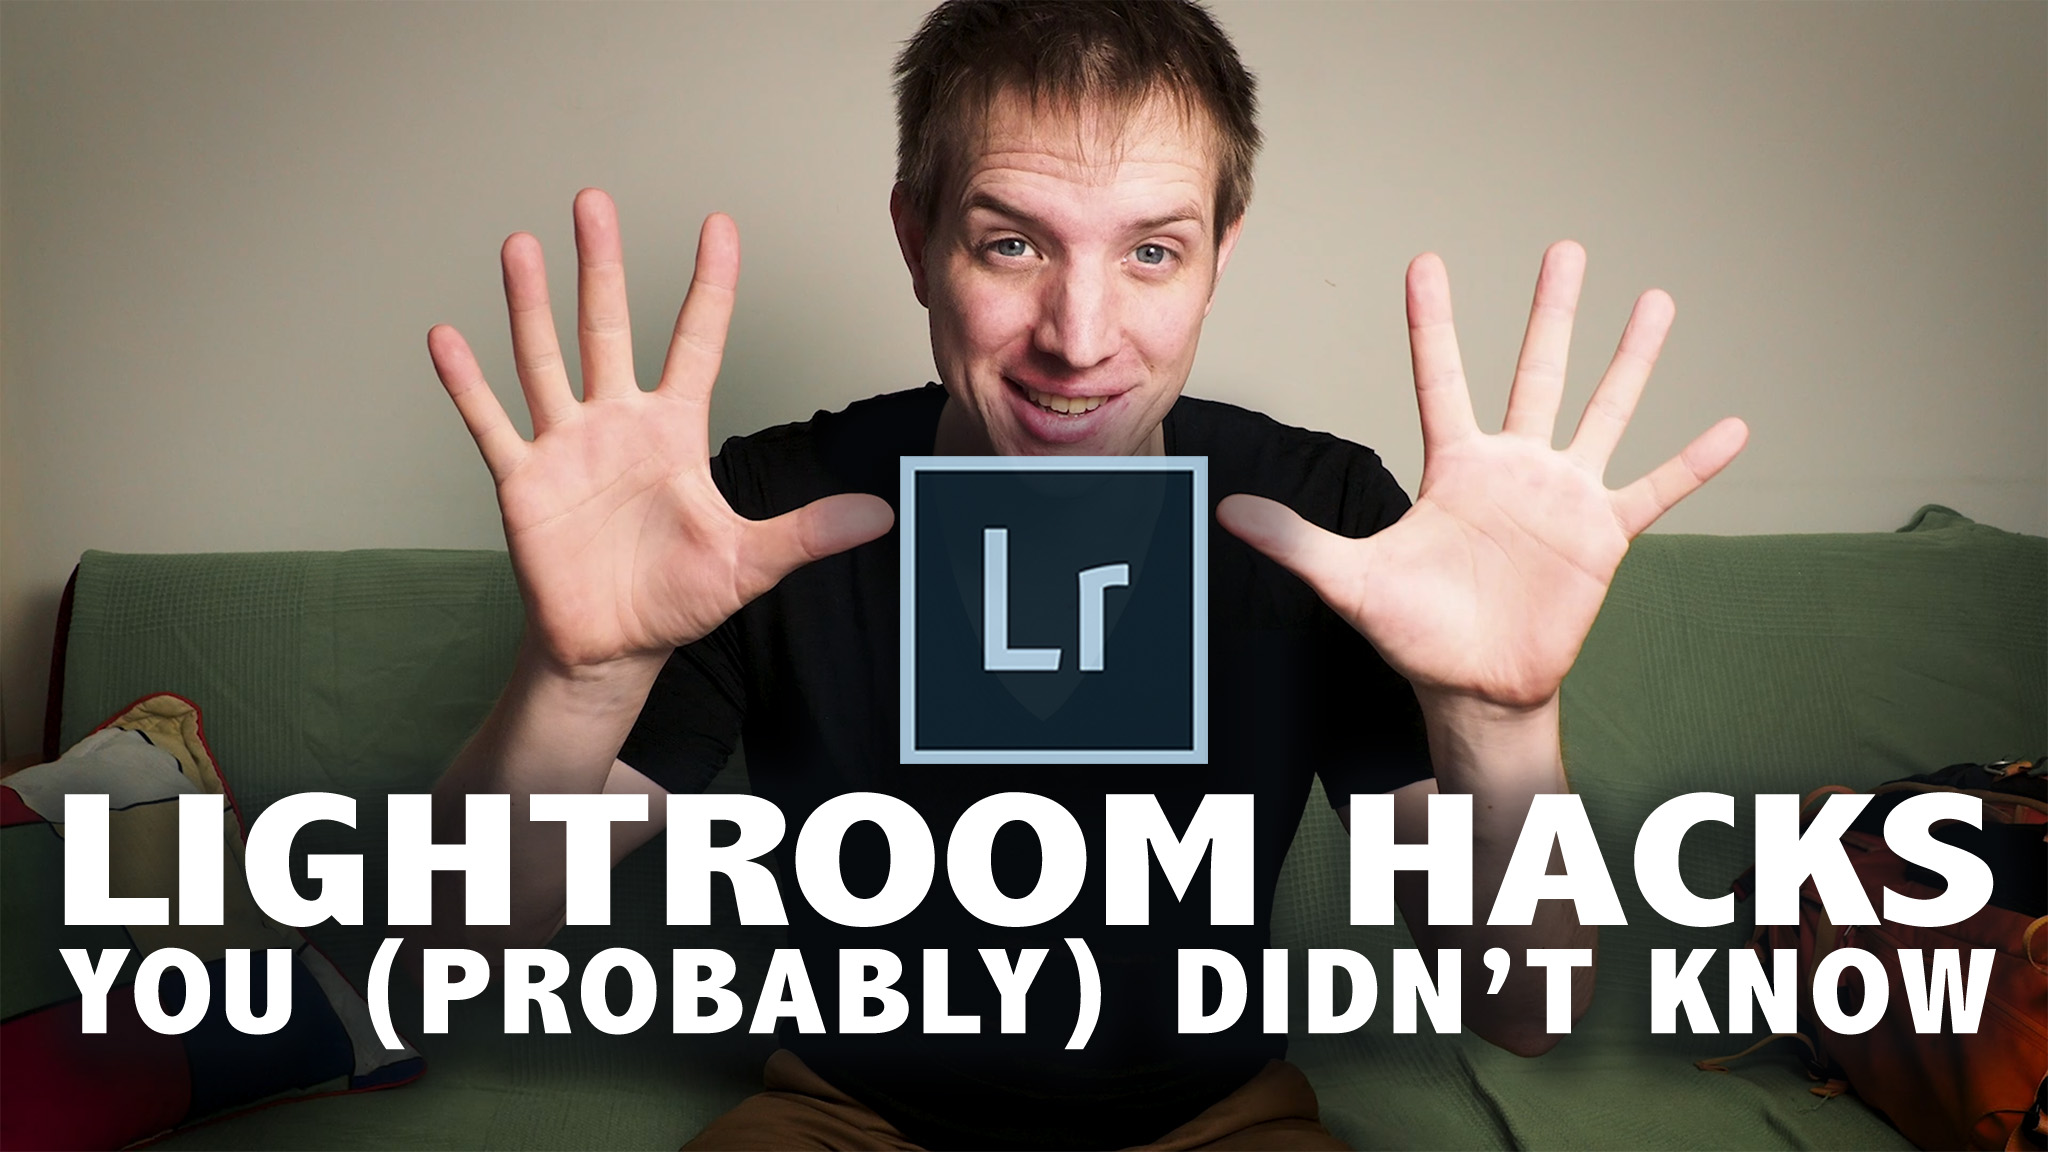 10 Lightroom Hacks You Probably Didn't Know